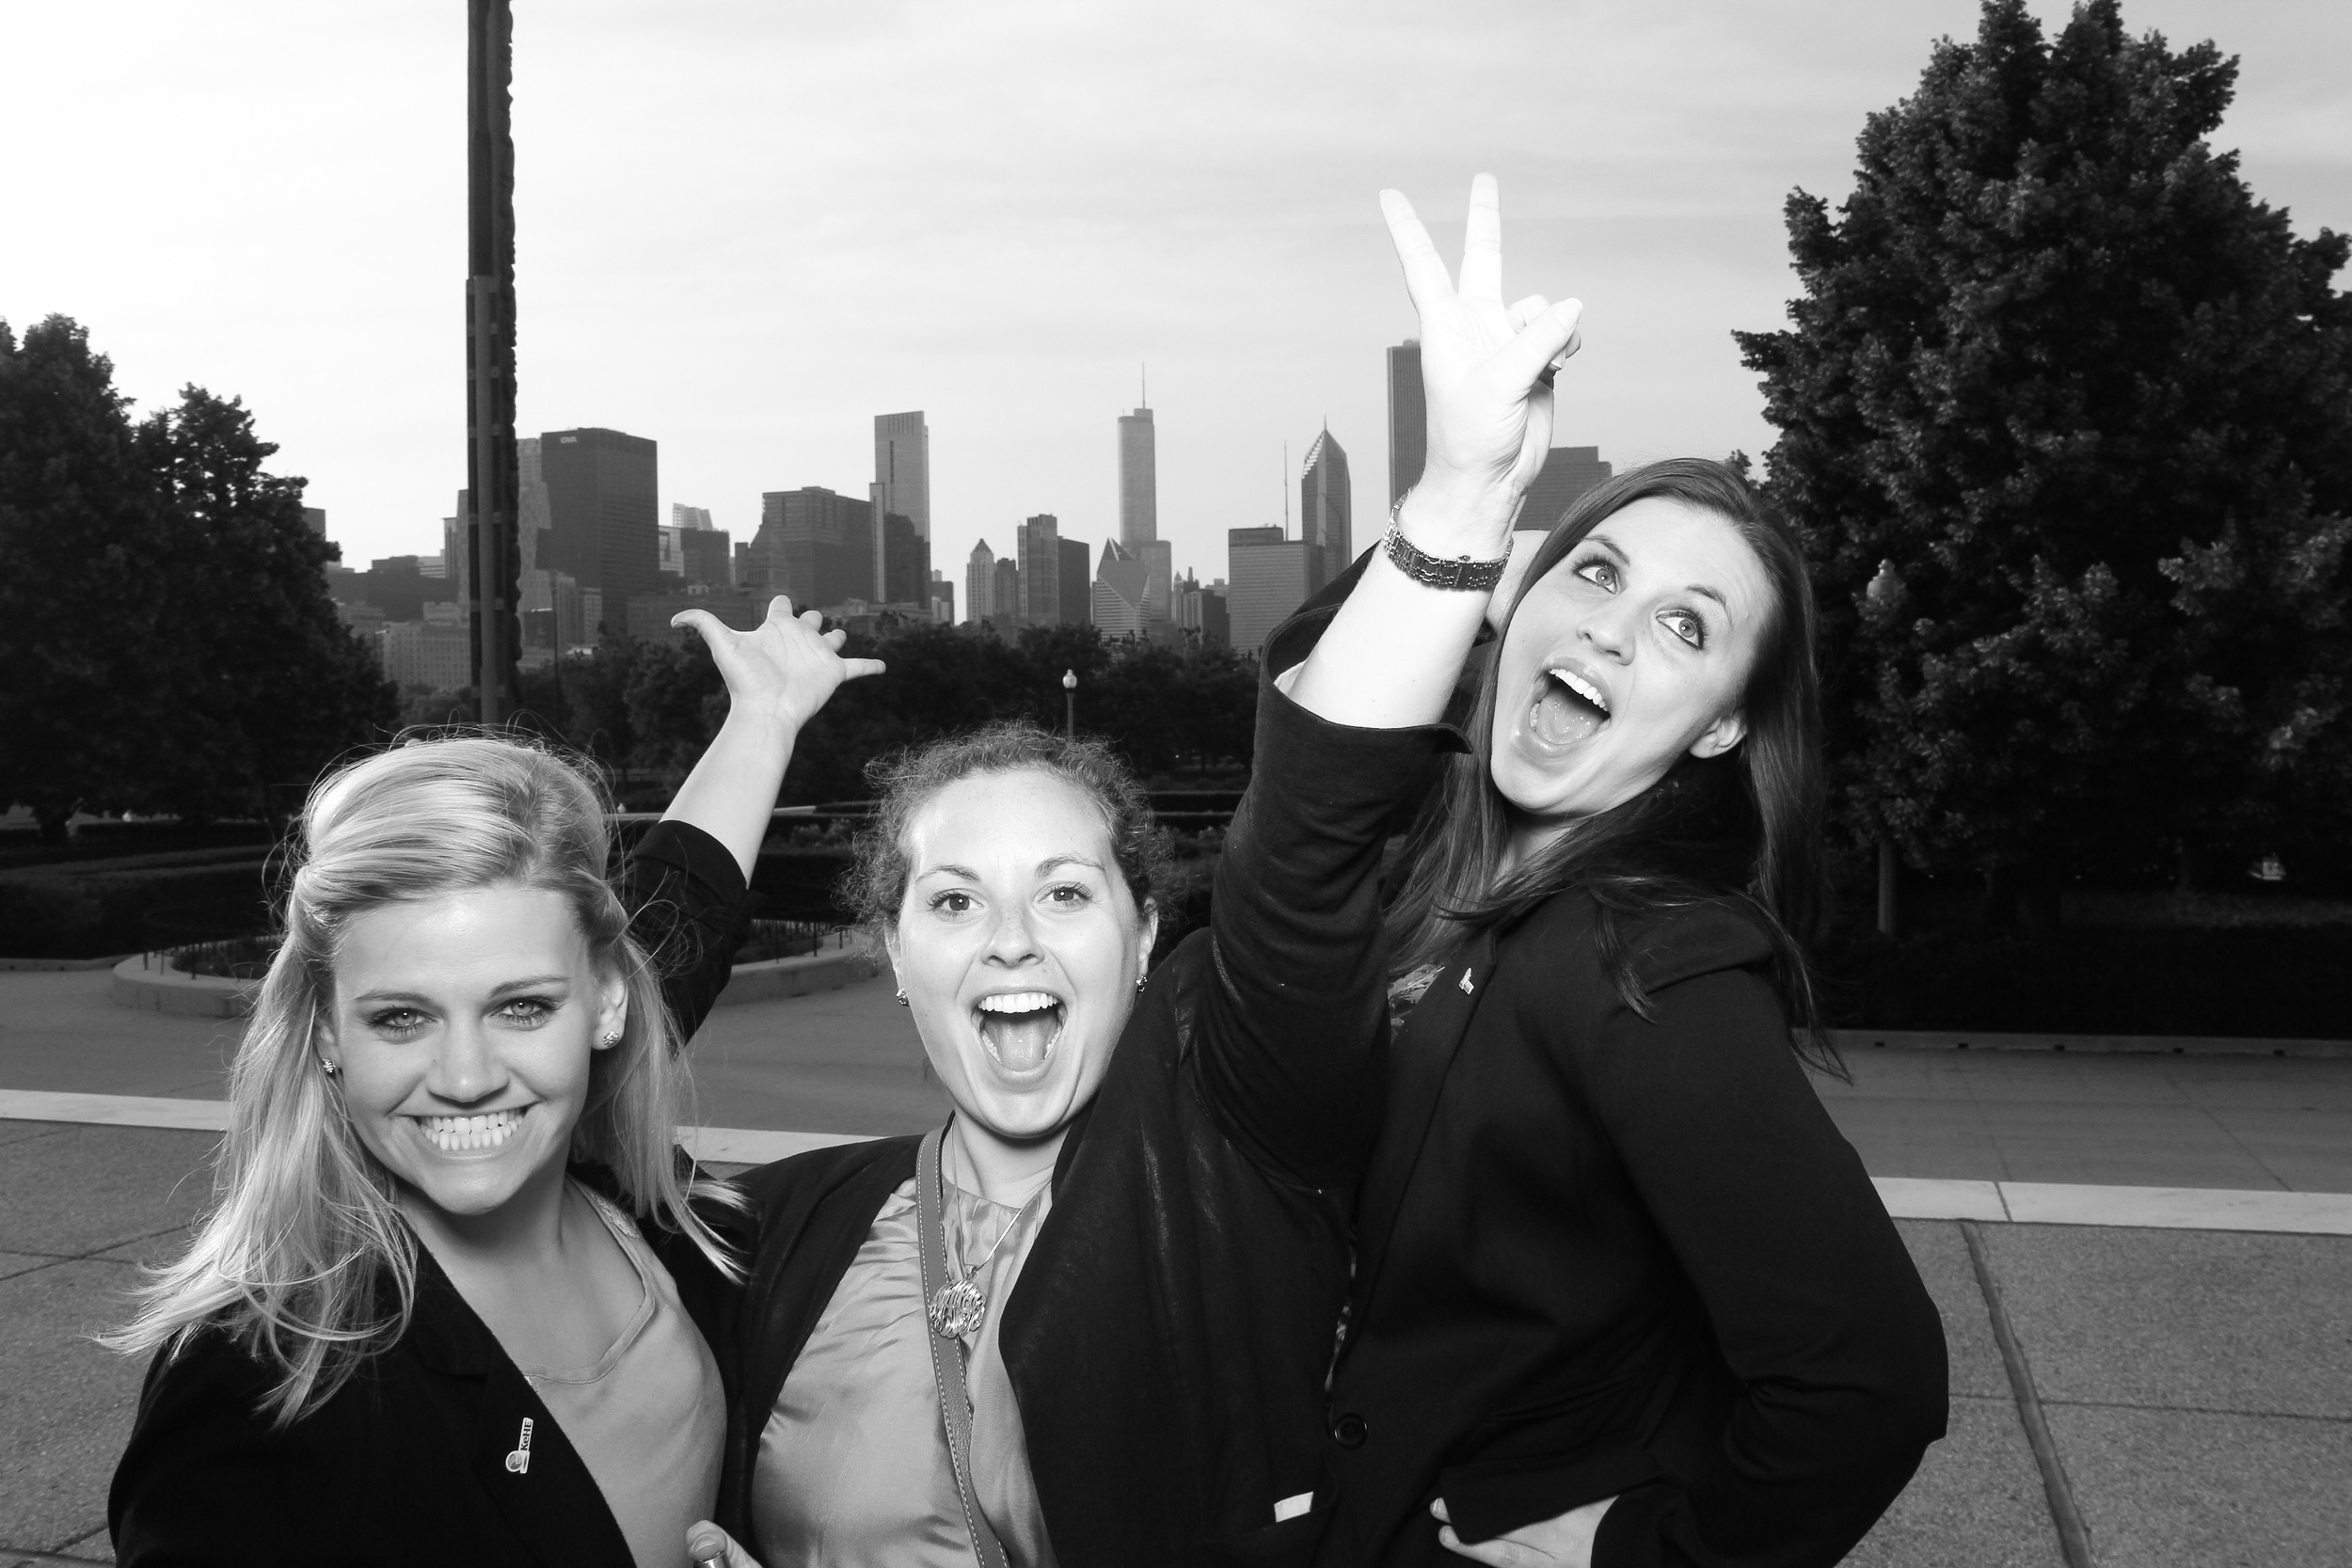 Guests pose against the Chicago Skyline for some fun pictures! Everyone looks amazing in Fotio's signature black and white style.